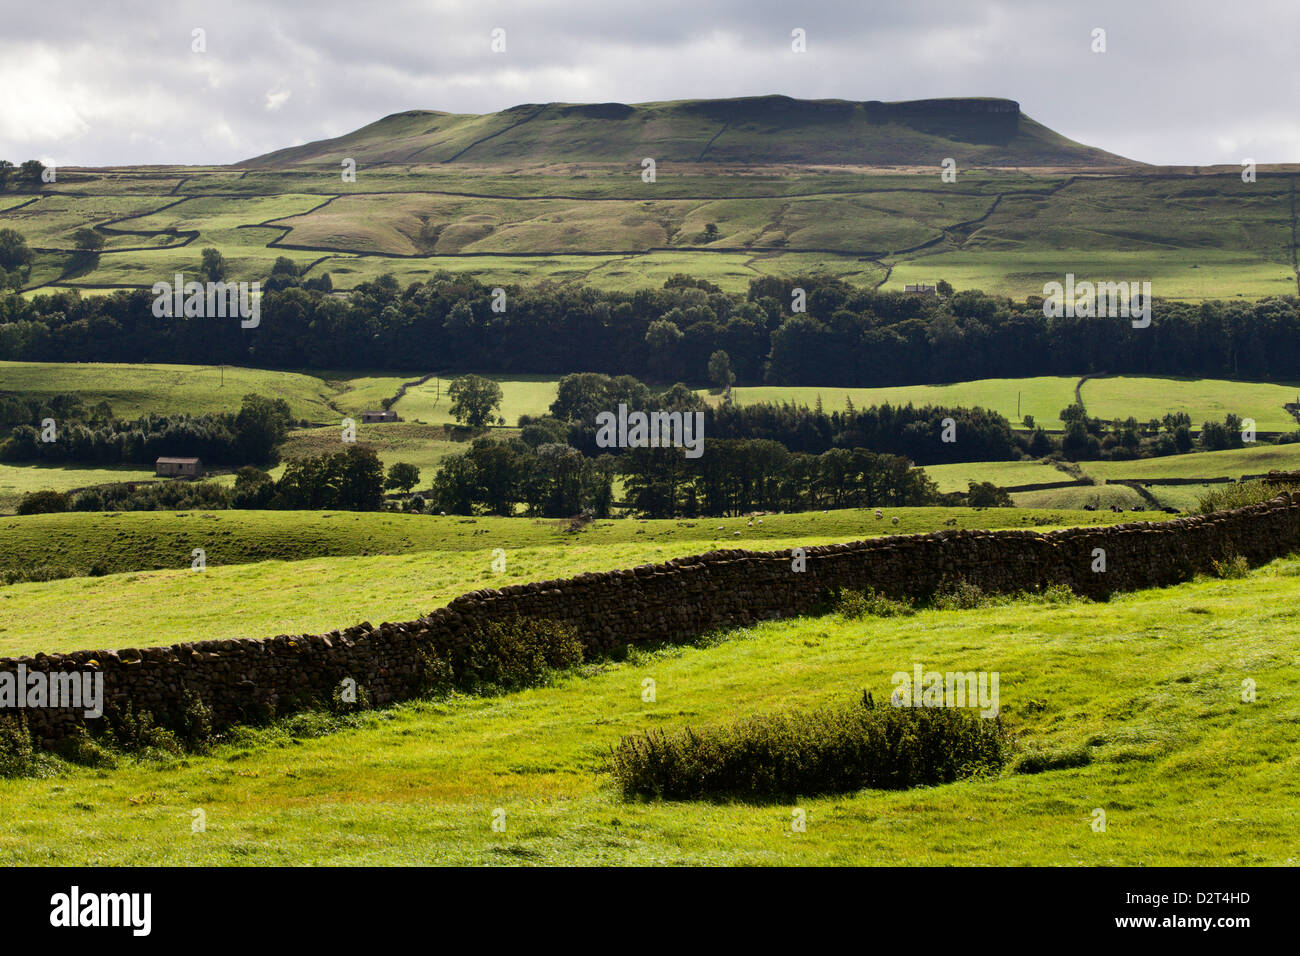 Addlebrough from Askrigg in Wensleydale, Yorkshire Dales, North Yorkshire, Yorkshire, England, United Kingdom, Europe - Stock Image